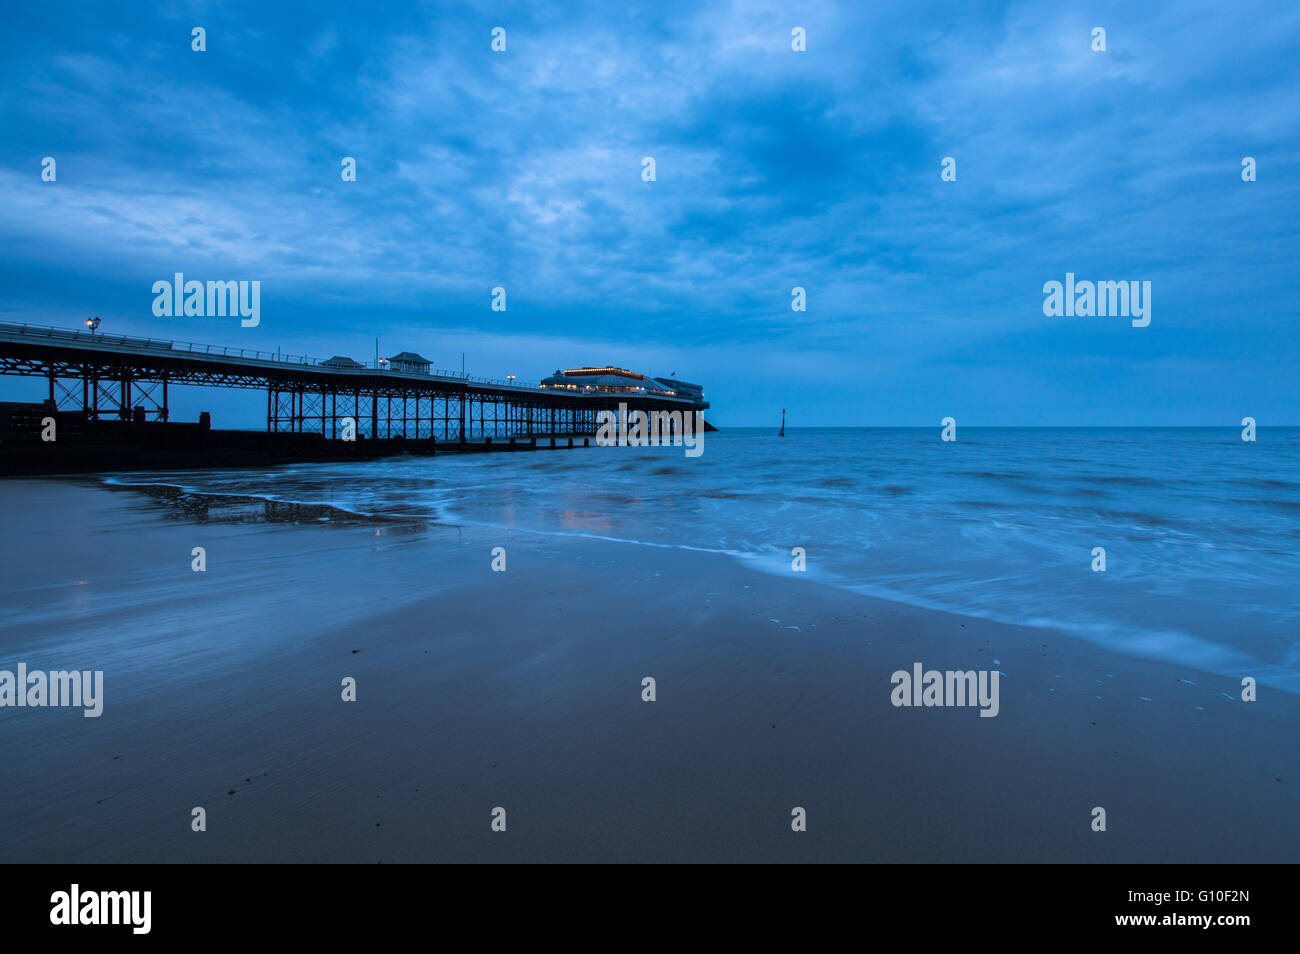 Cloudy evening at Cromer Pier, Norfolk as the sun sets - Stock Image